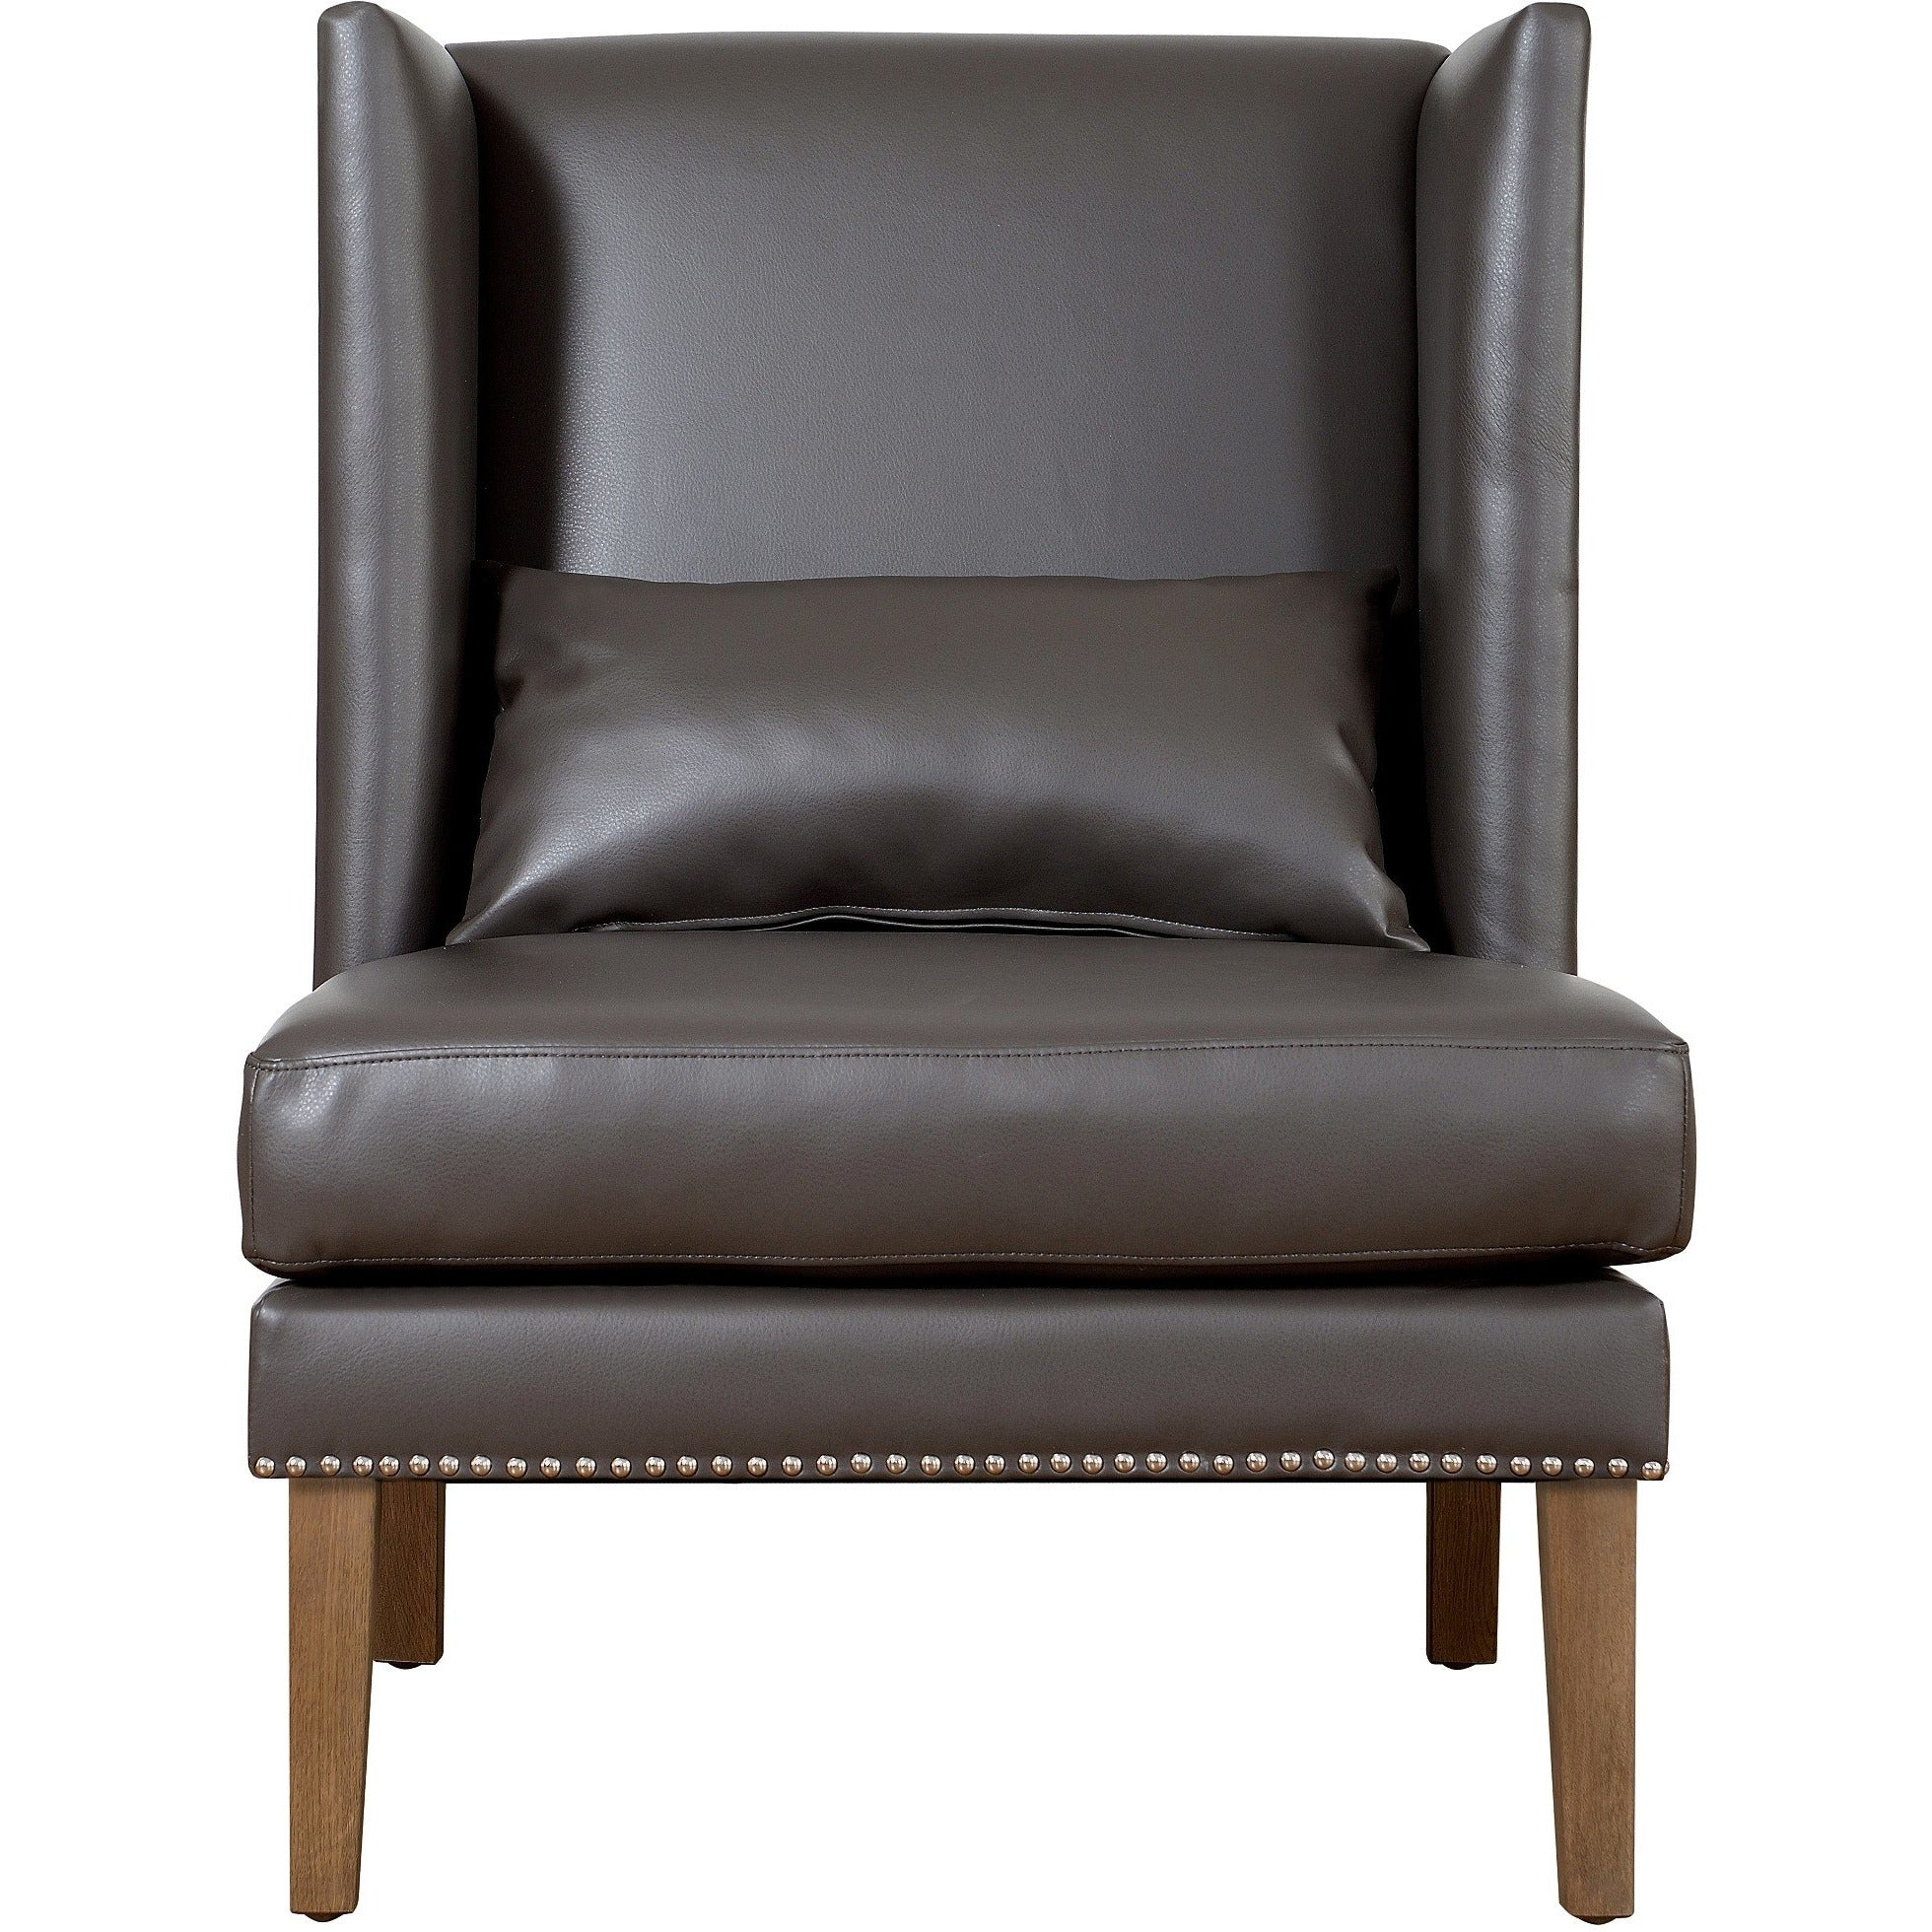 tov furniture modern chelsea grey leather wing chair tov che gbl